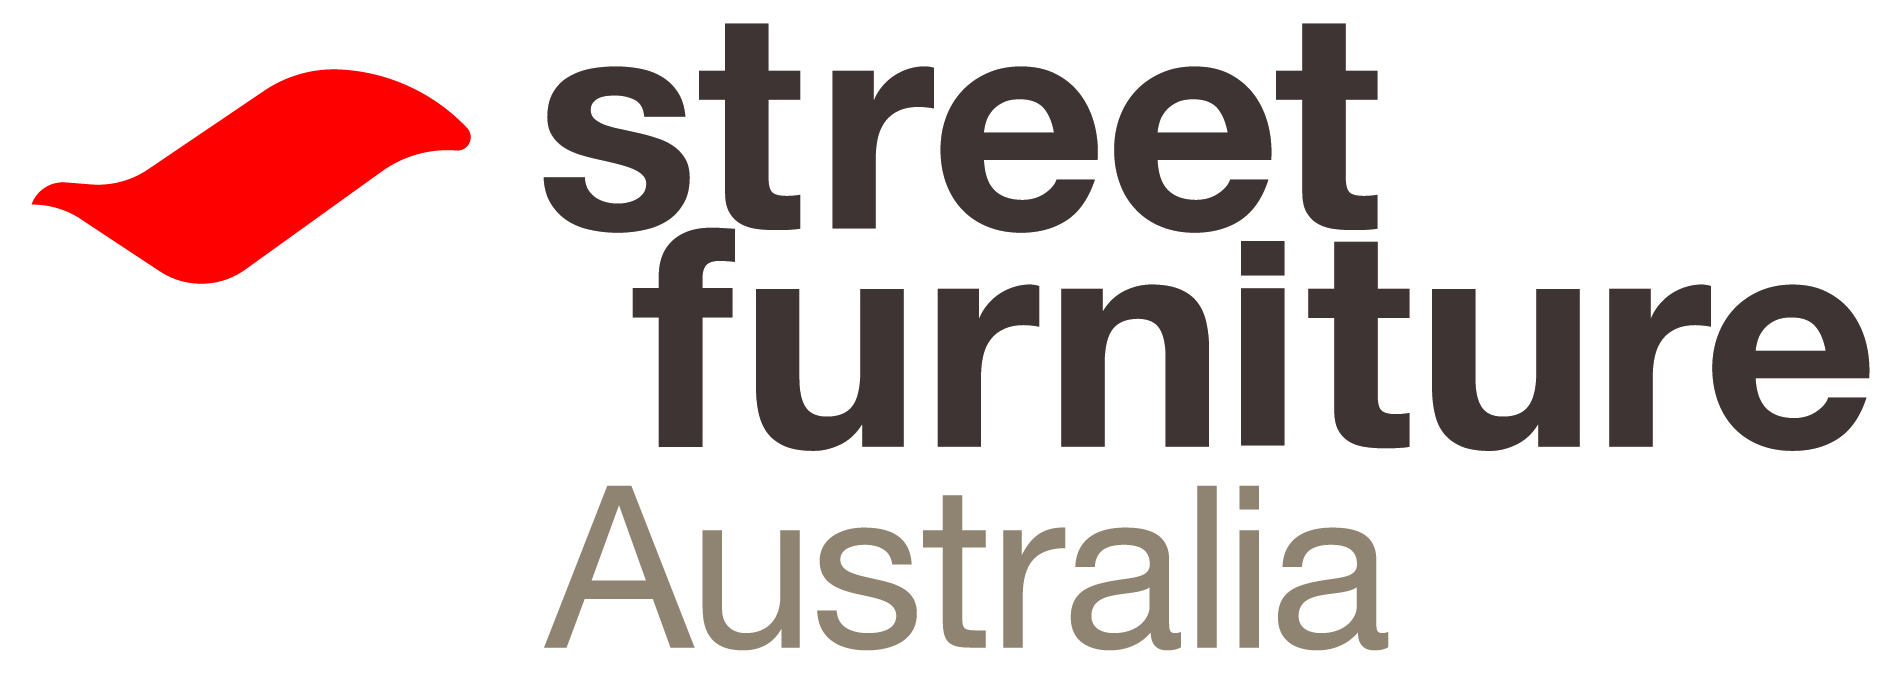 Street Furniture Australia